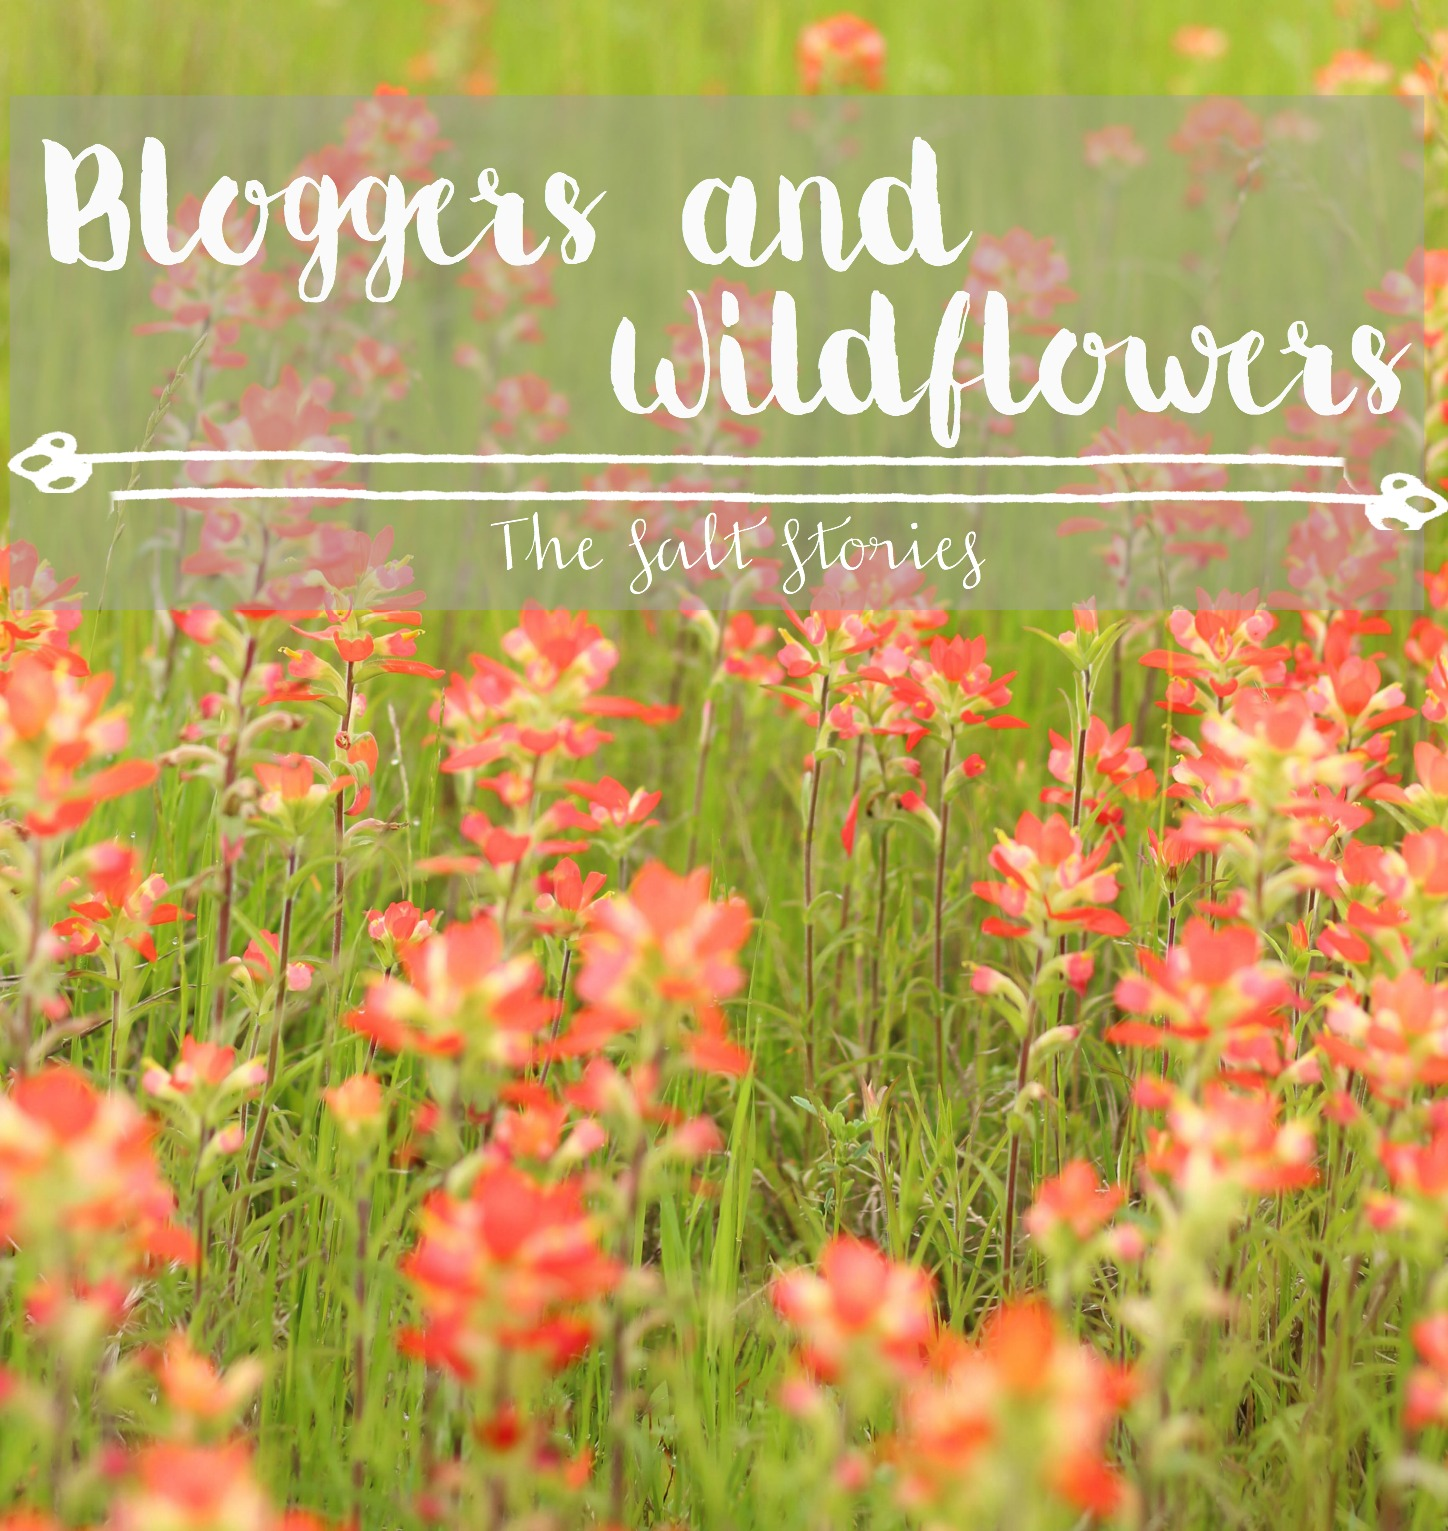 bloggers-wildflowers-title